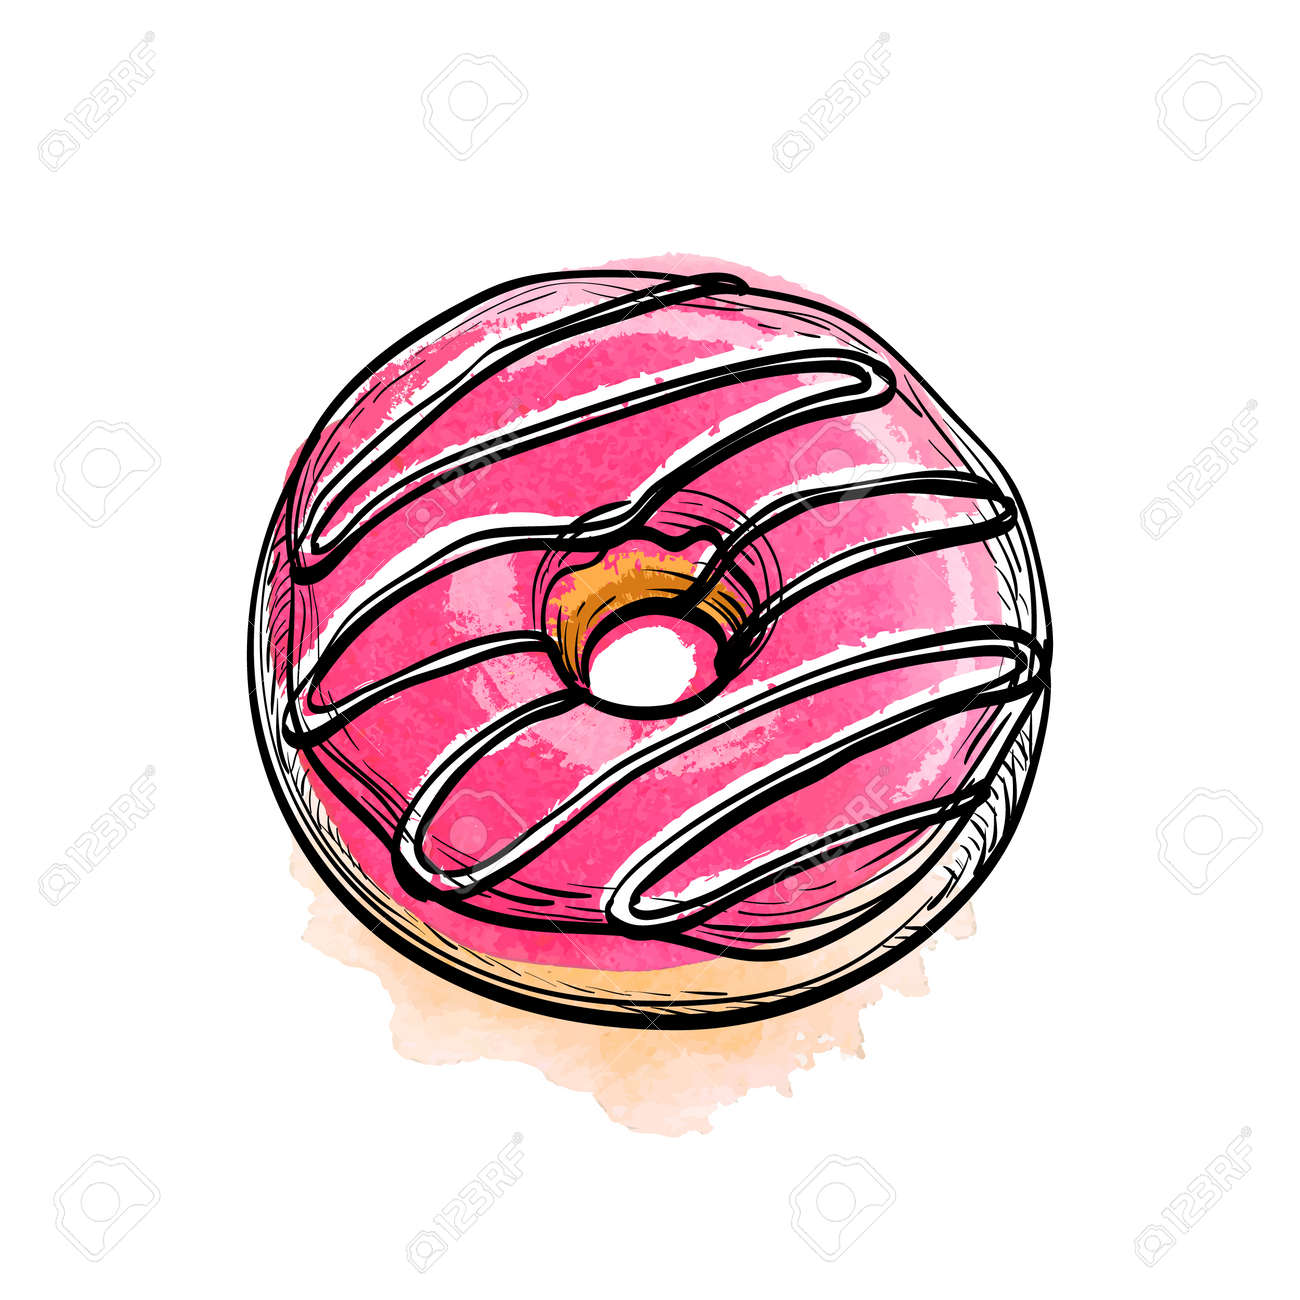 Hand Drawn Vector Illustration Of Donut Watercolor Background